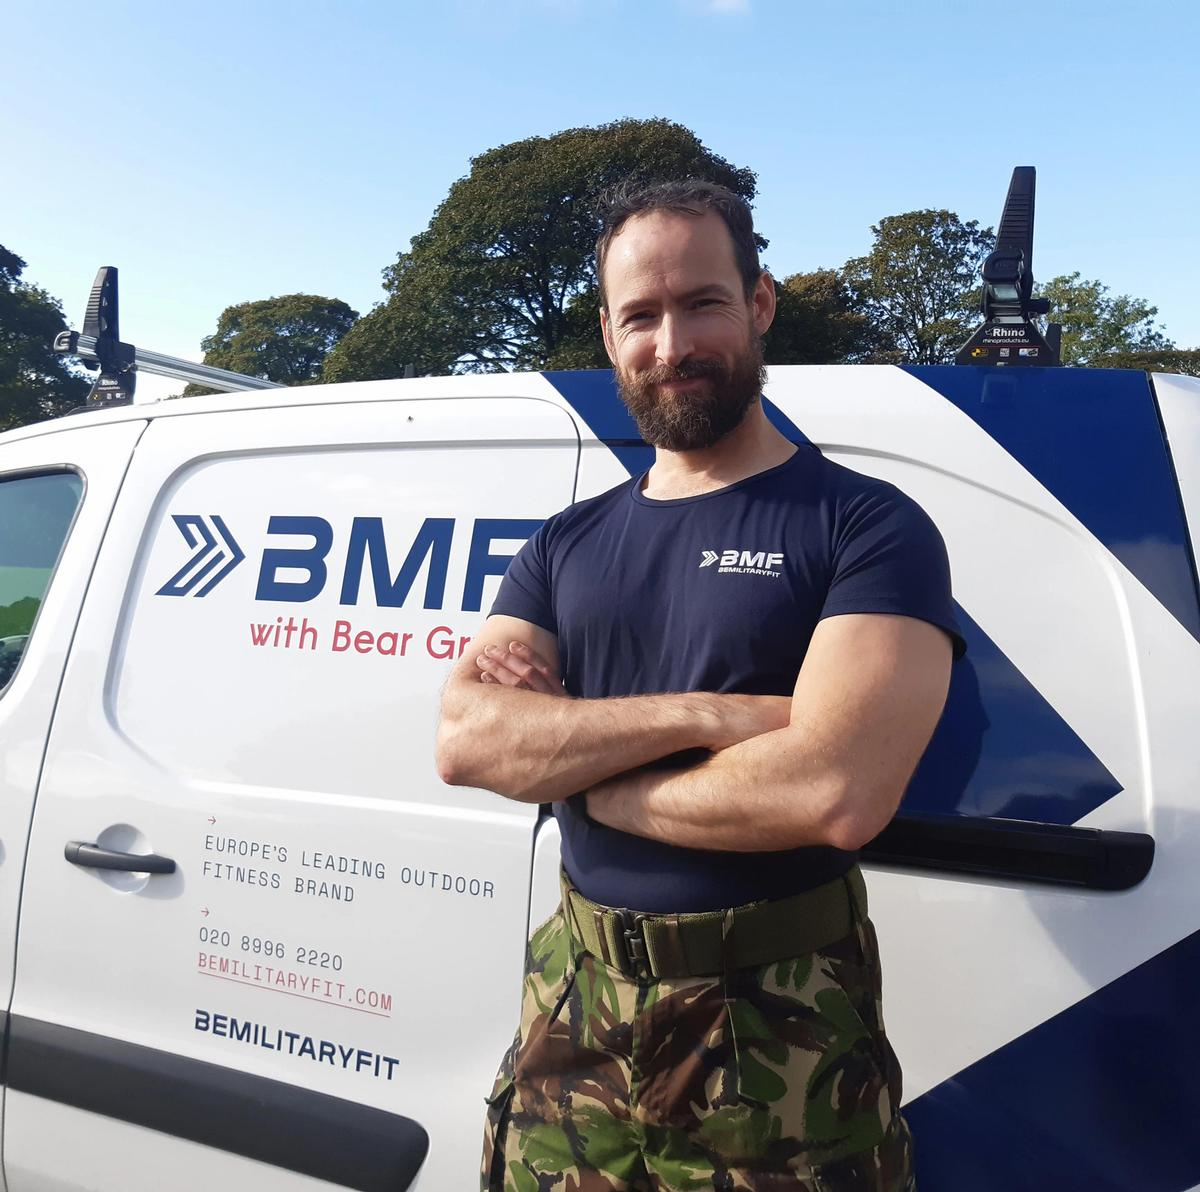 A number of BMF franchisees are ex-military staff / Be Military Fit